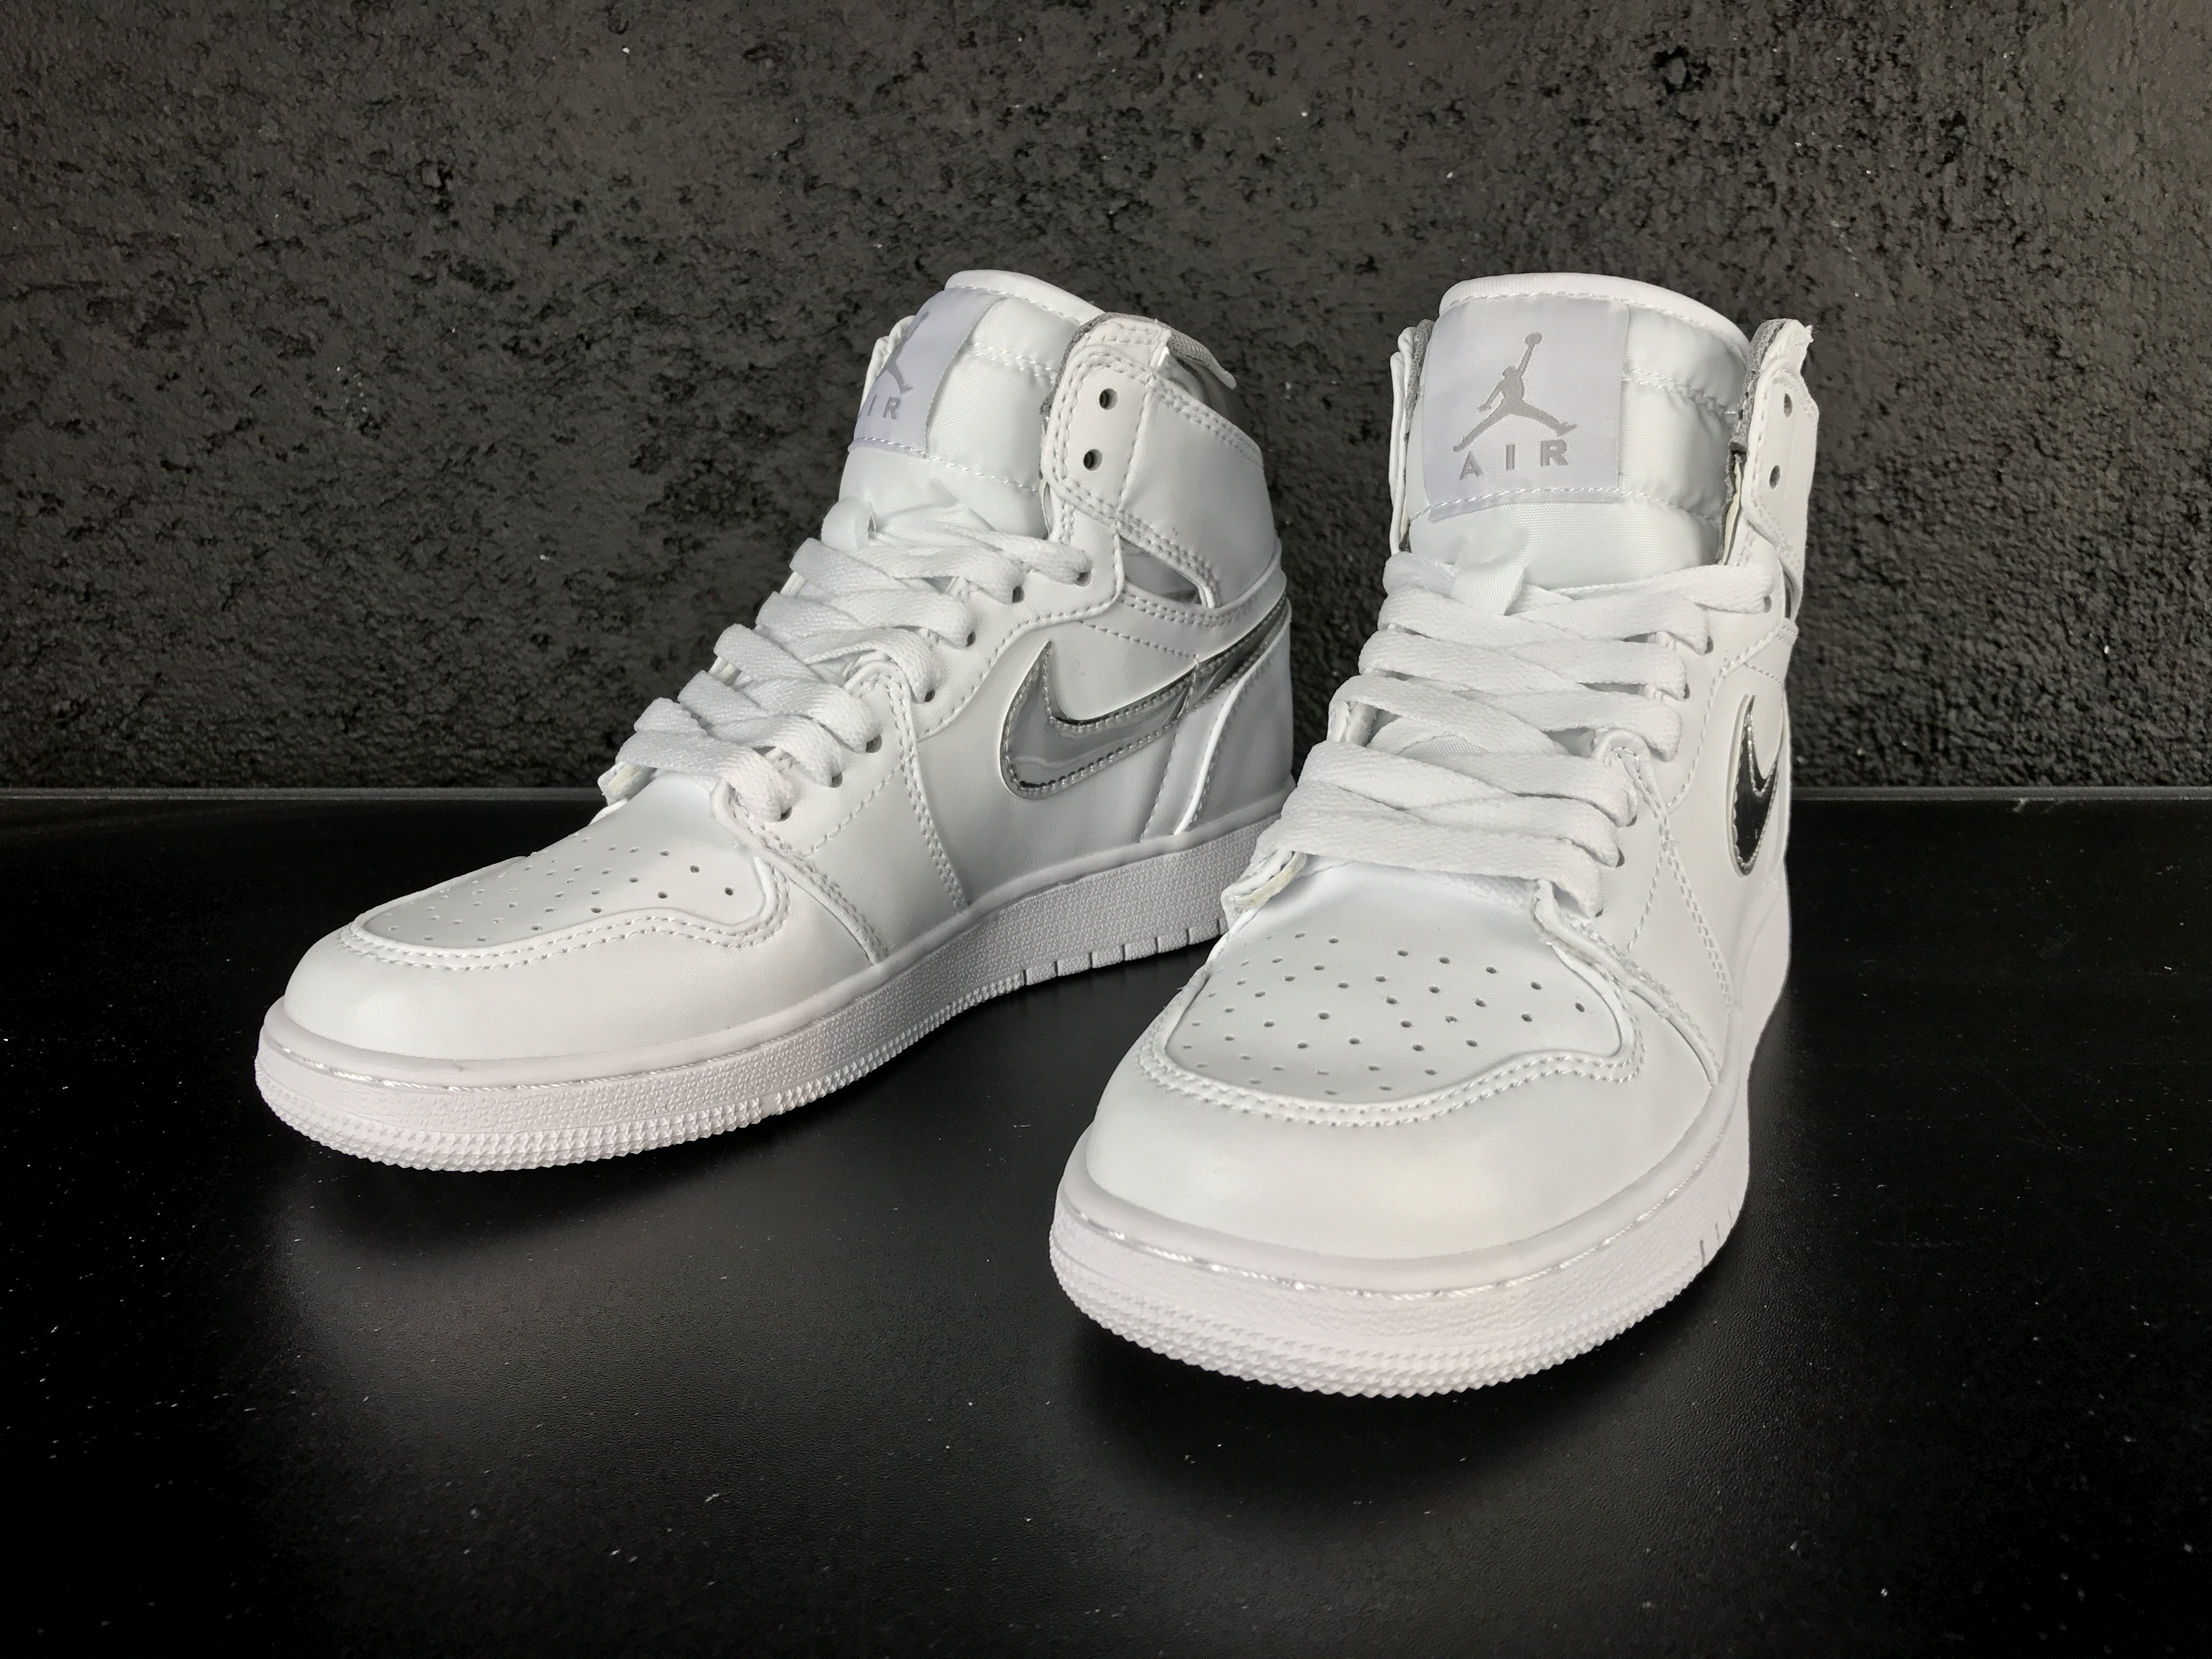 New Jordan 1 Retro White Silver Lover Shoes